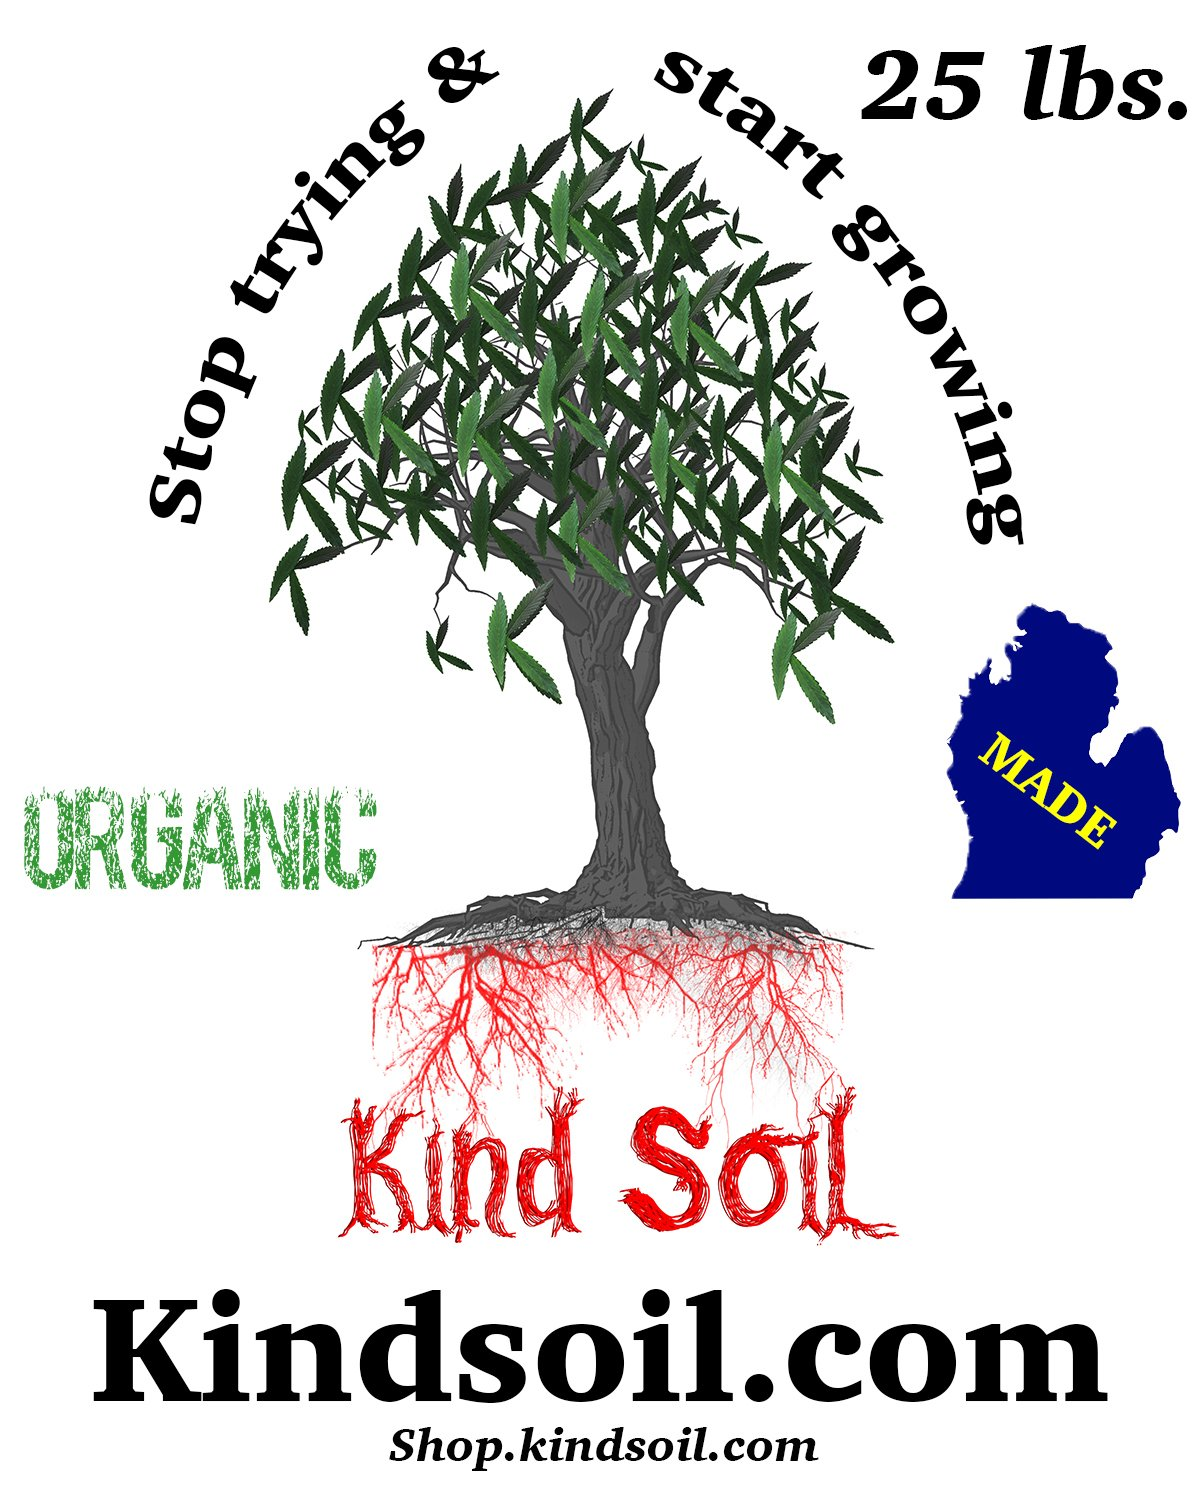 Kind Soil Hot Mix Total Weight, ( 5 x 5 lbs. Bags) - 25 lbs.